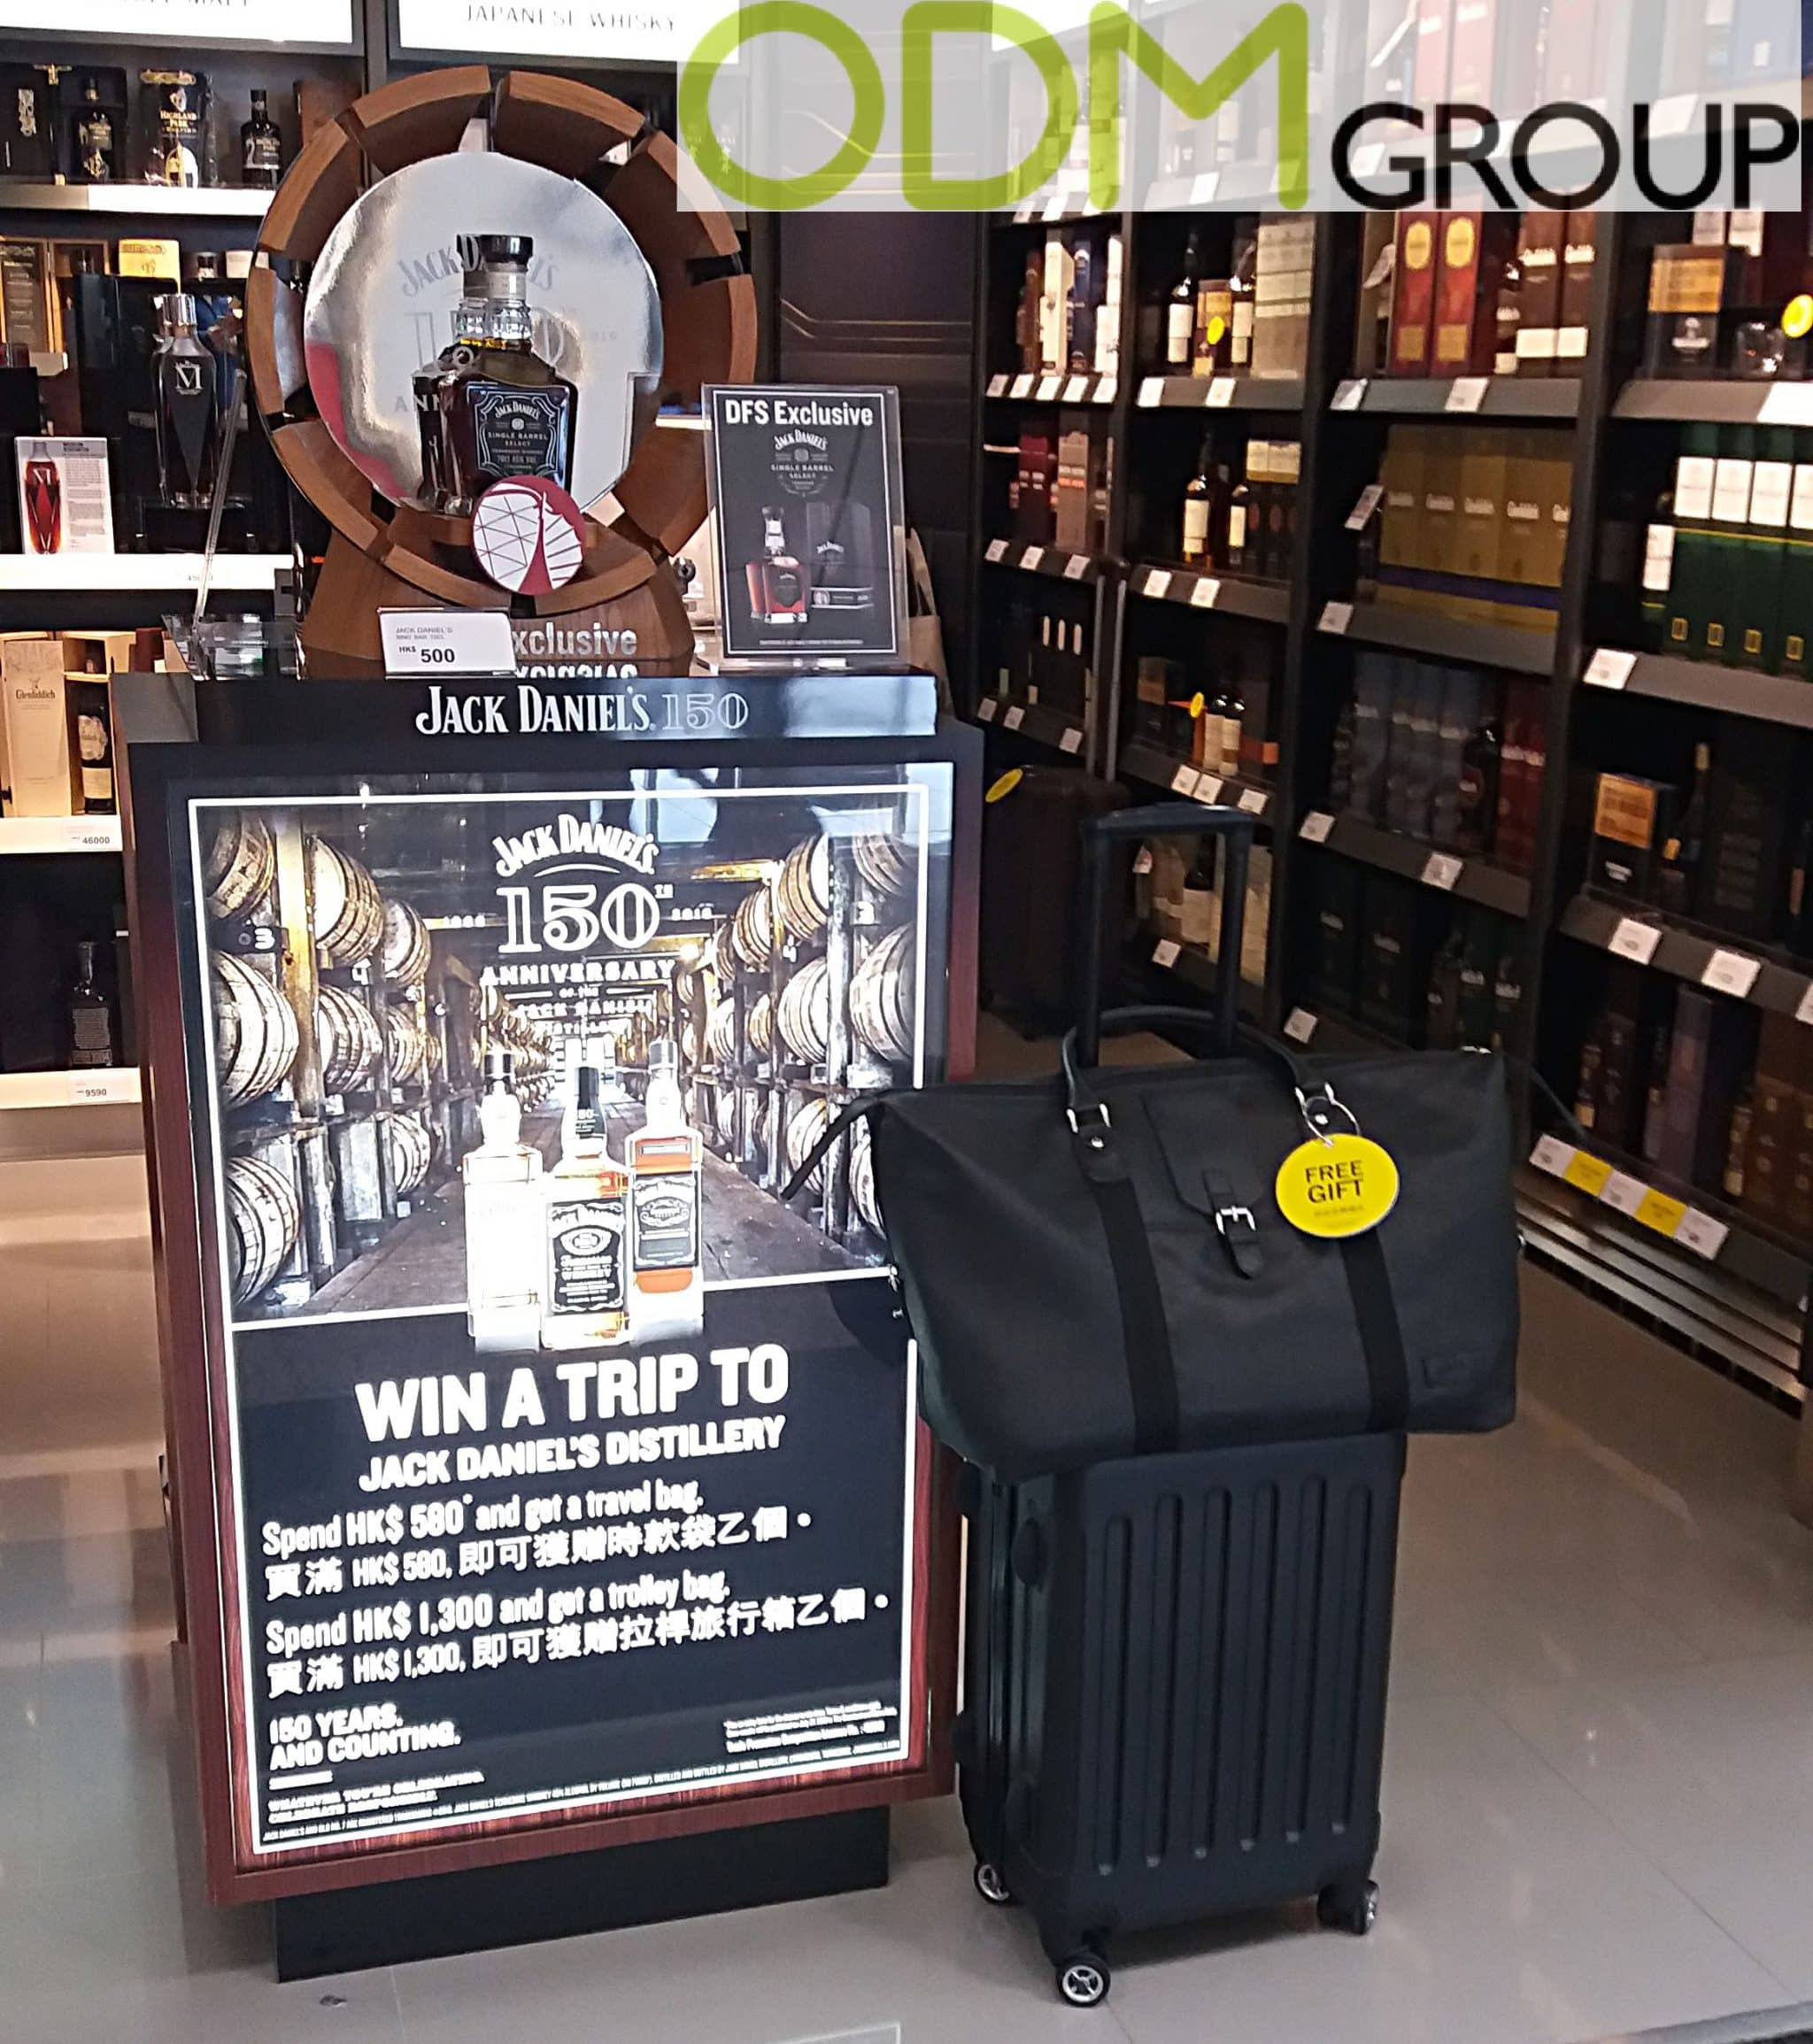 free gift promotional luggage bags by jack daniel s theodmgroup blog